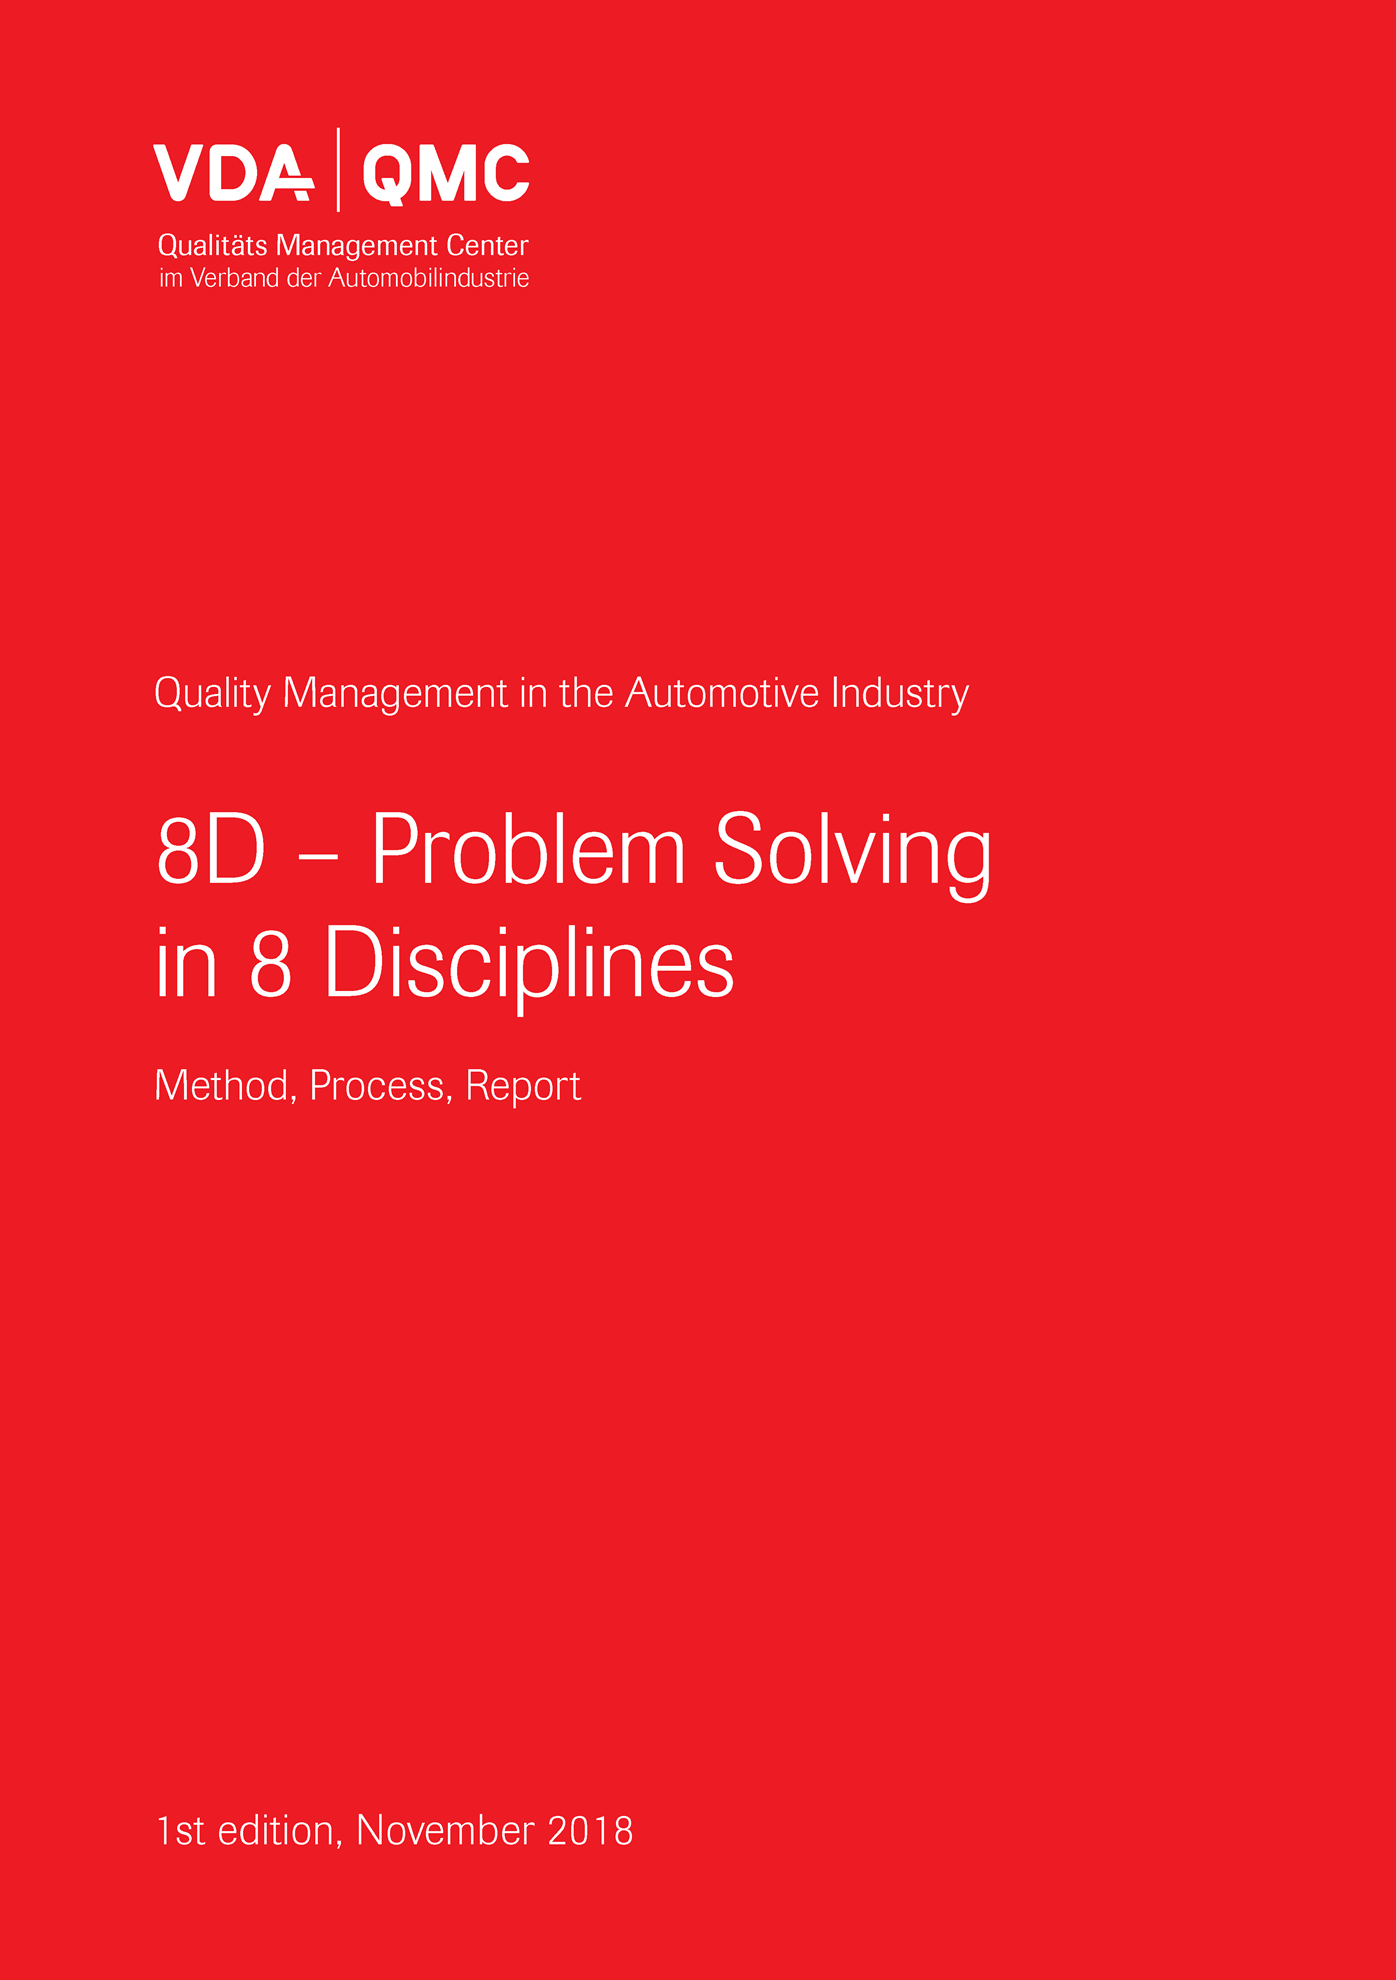 Picture of 8D - Problem Solving in 8 Disciplines